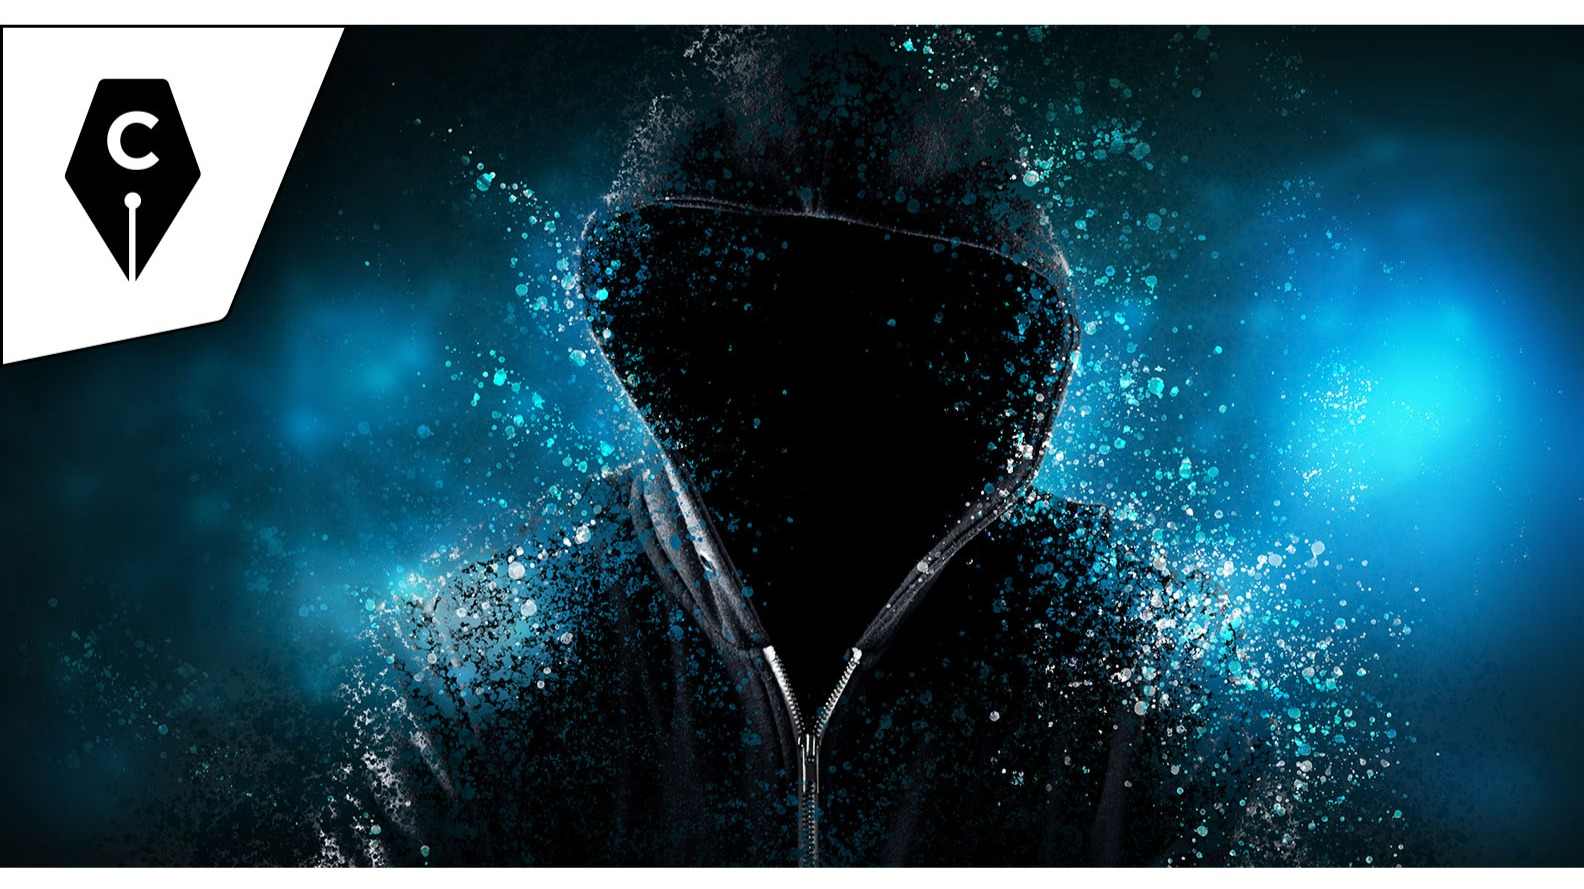 Cryptowriter Branded Image - Copyrights go to The Writer Company